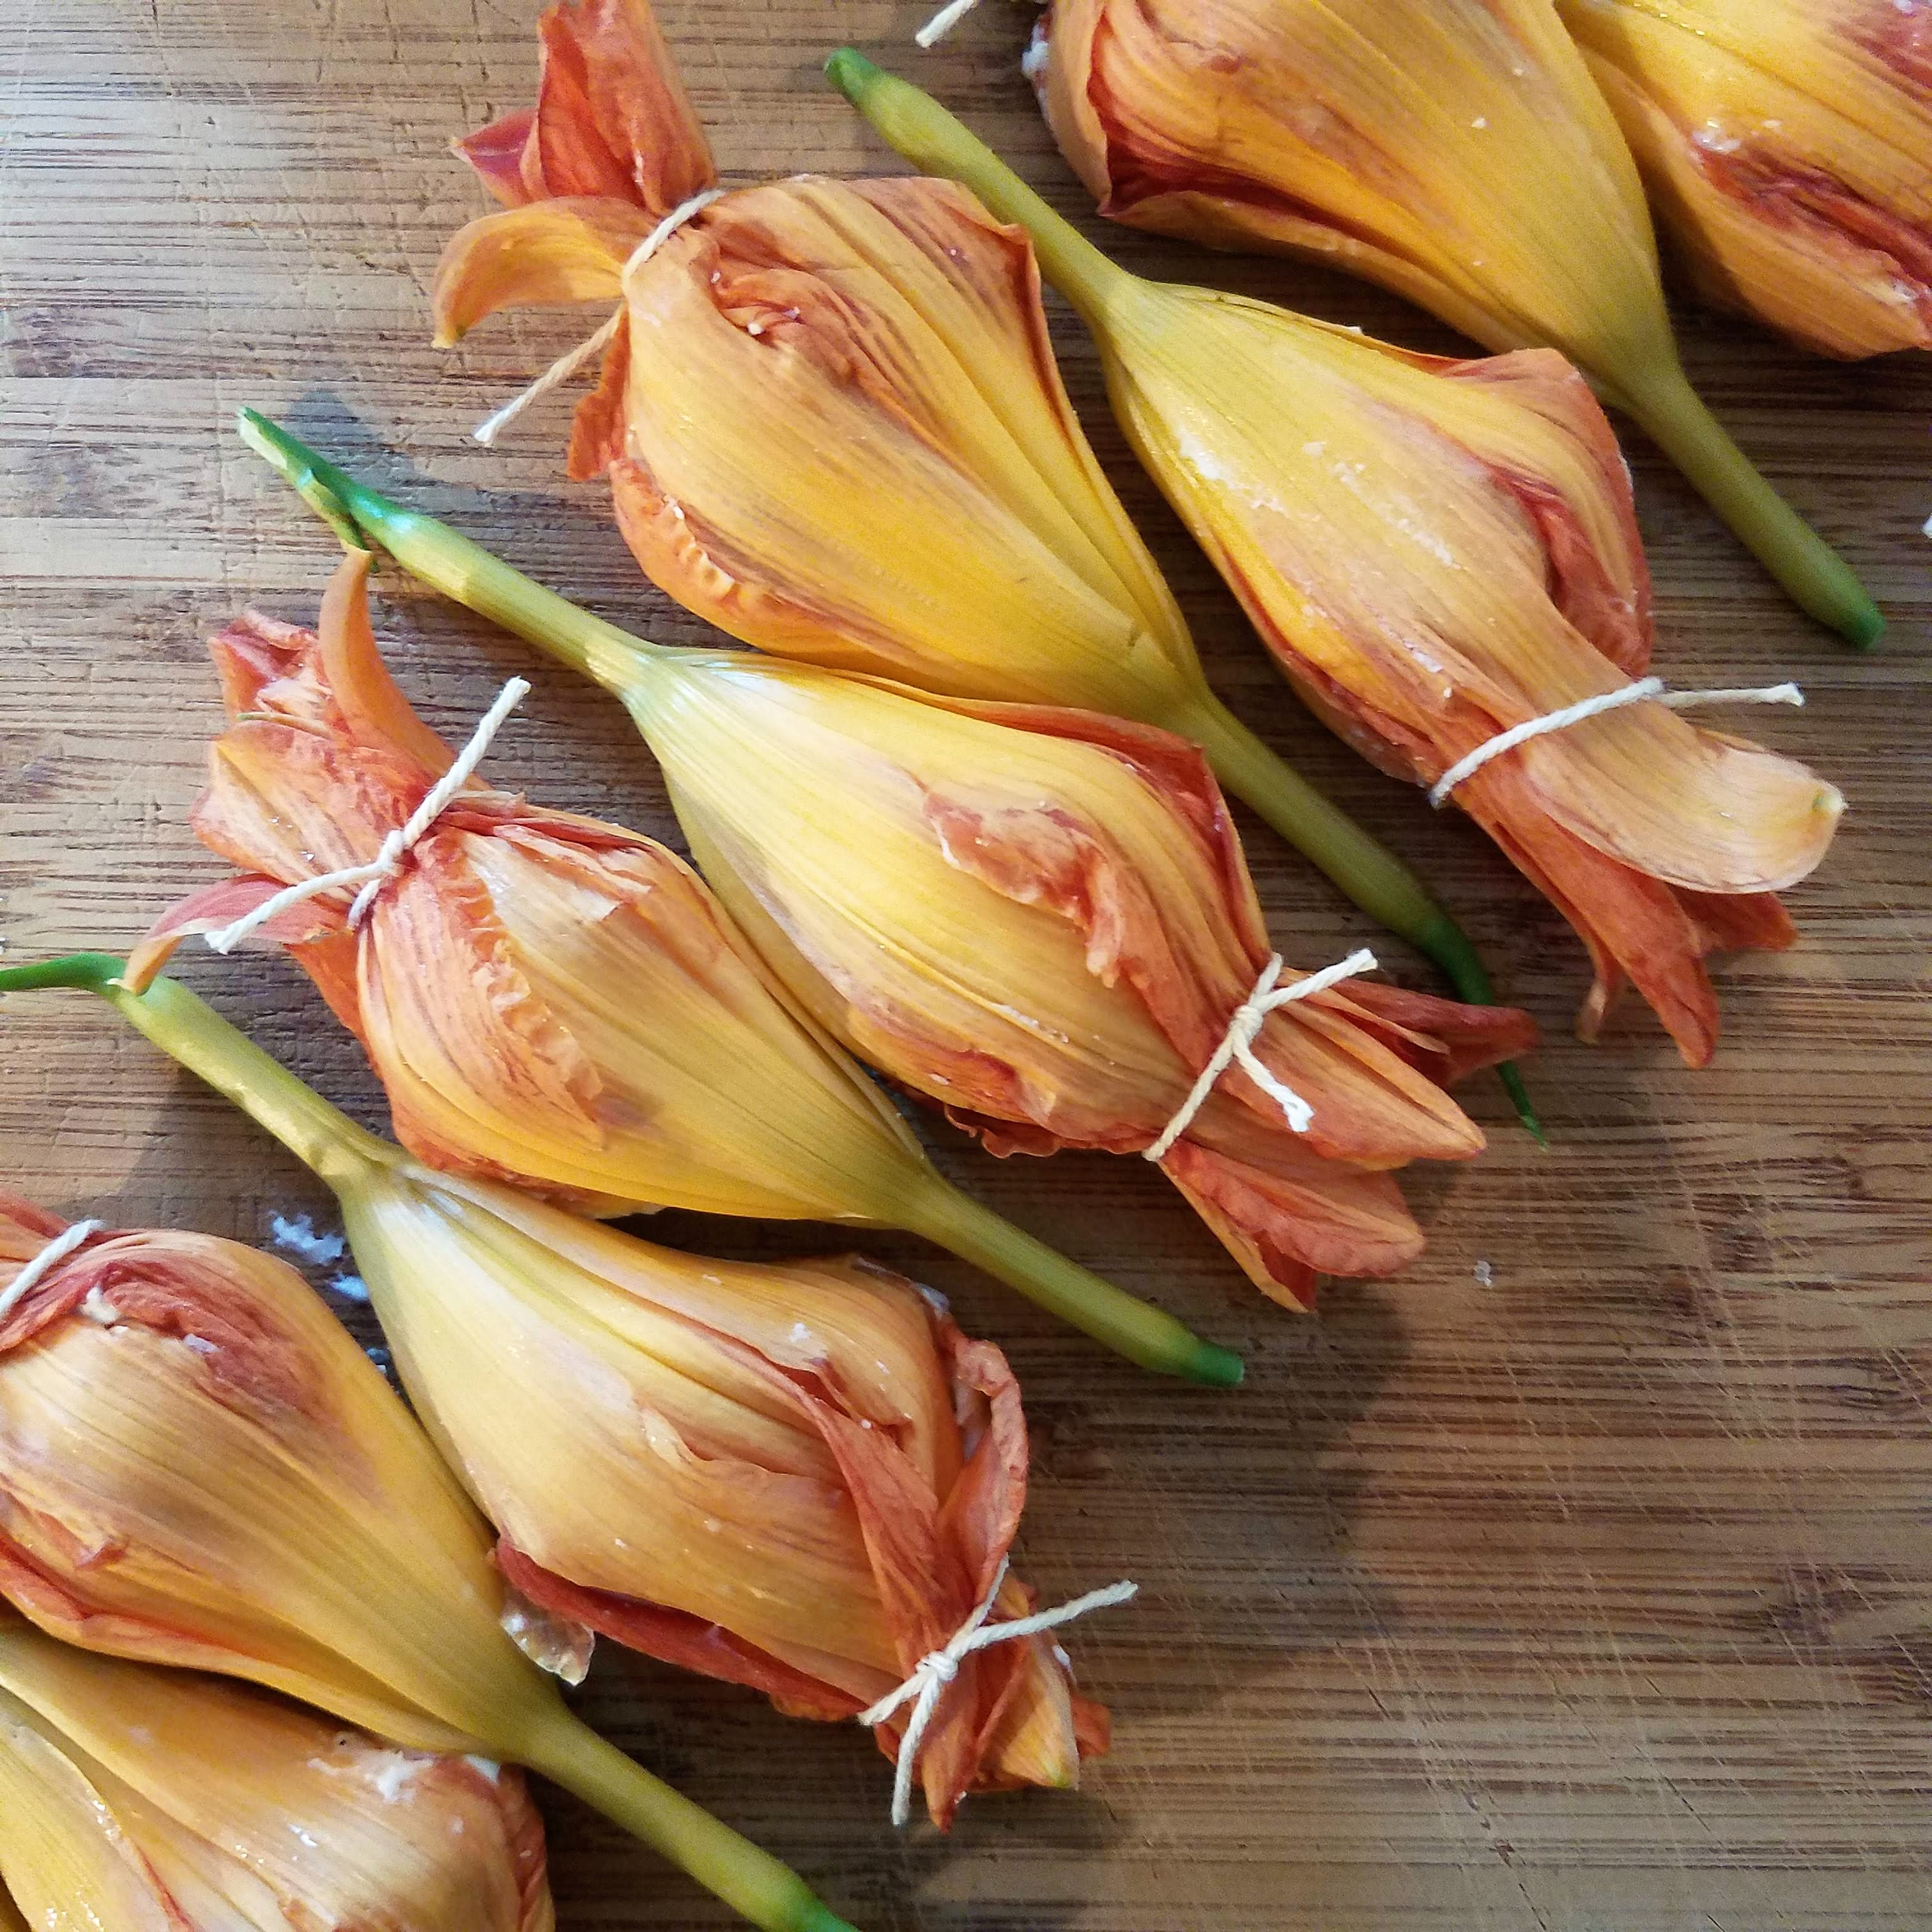 Stuffed day lilies, ready to fry